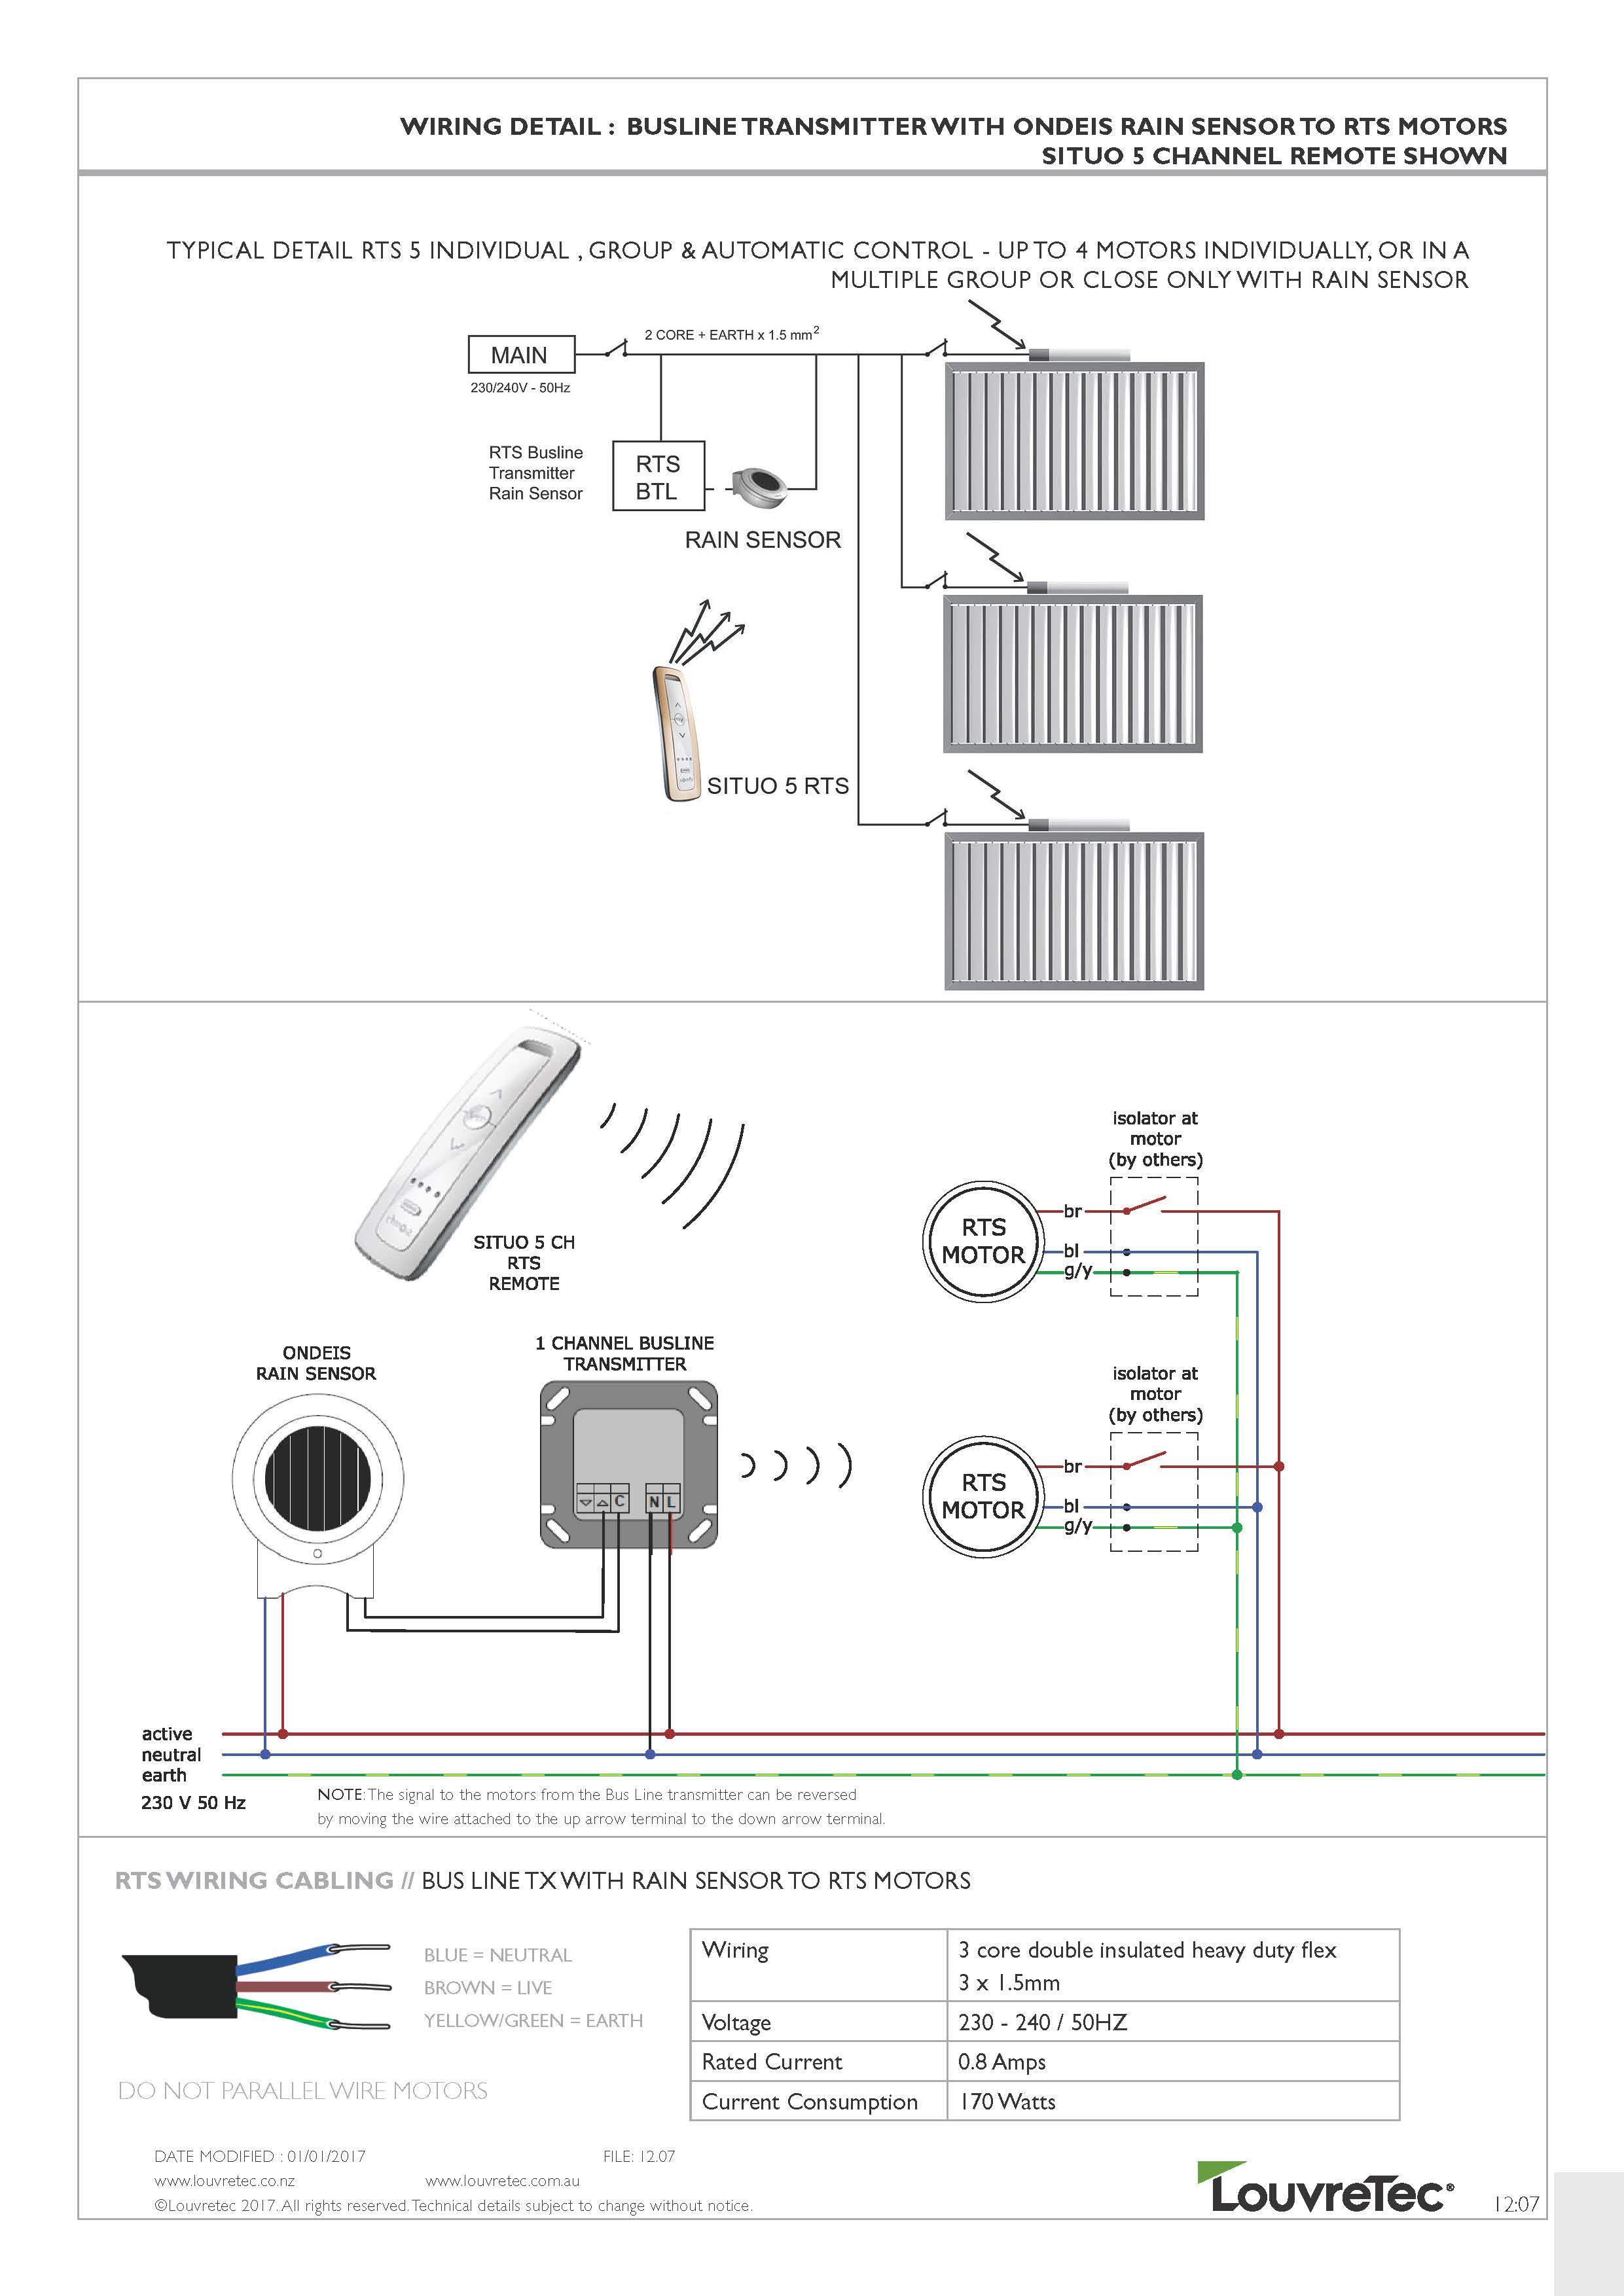 Electrical Wiring Diagrams 110 To 220 Breaker Box Basic Volt Electric Motor Diagram Schematics On